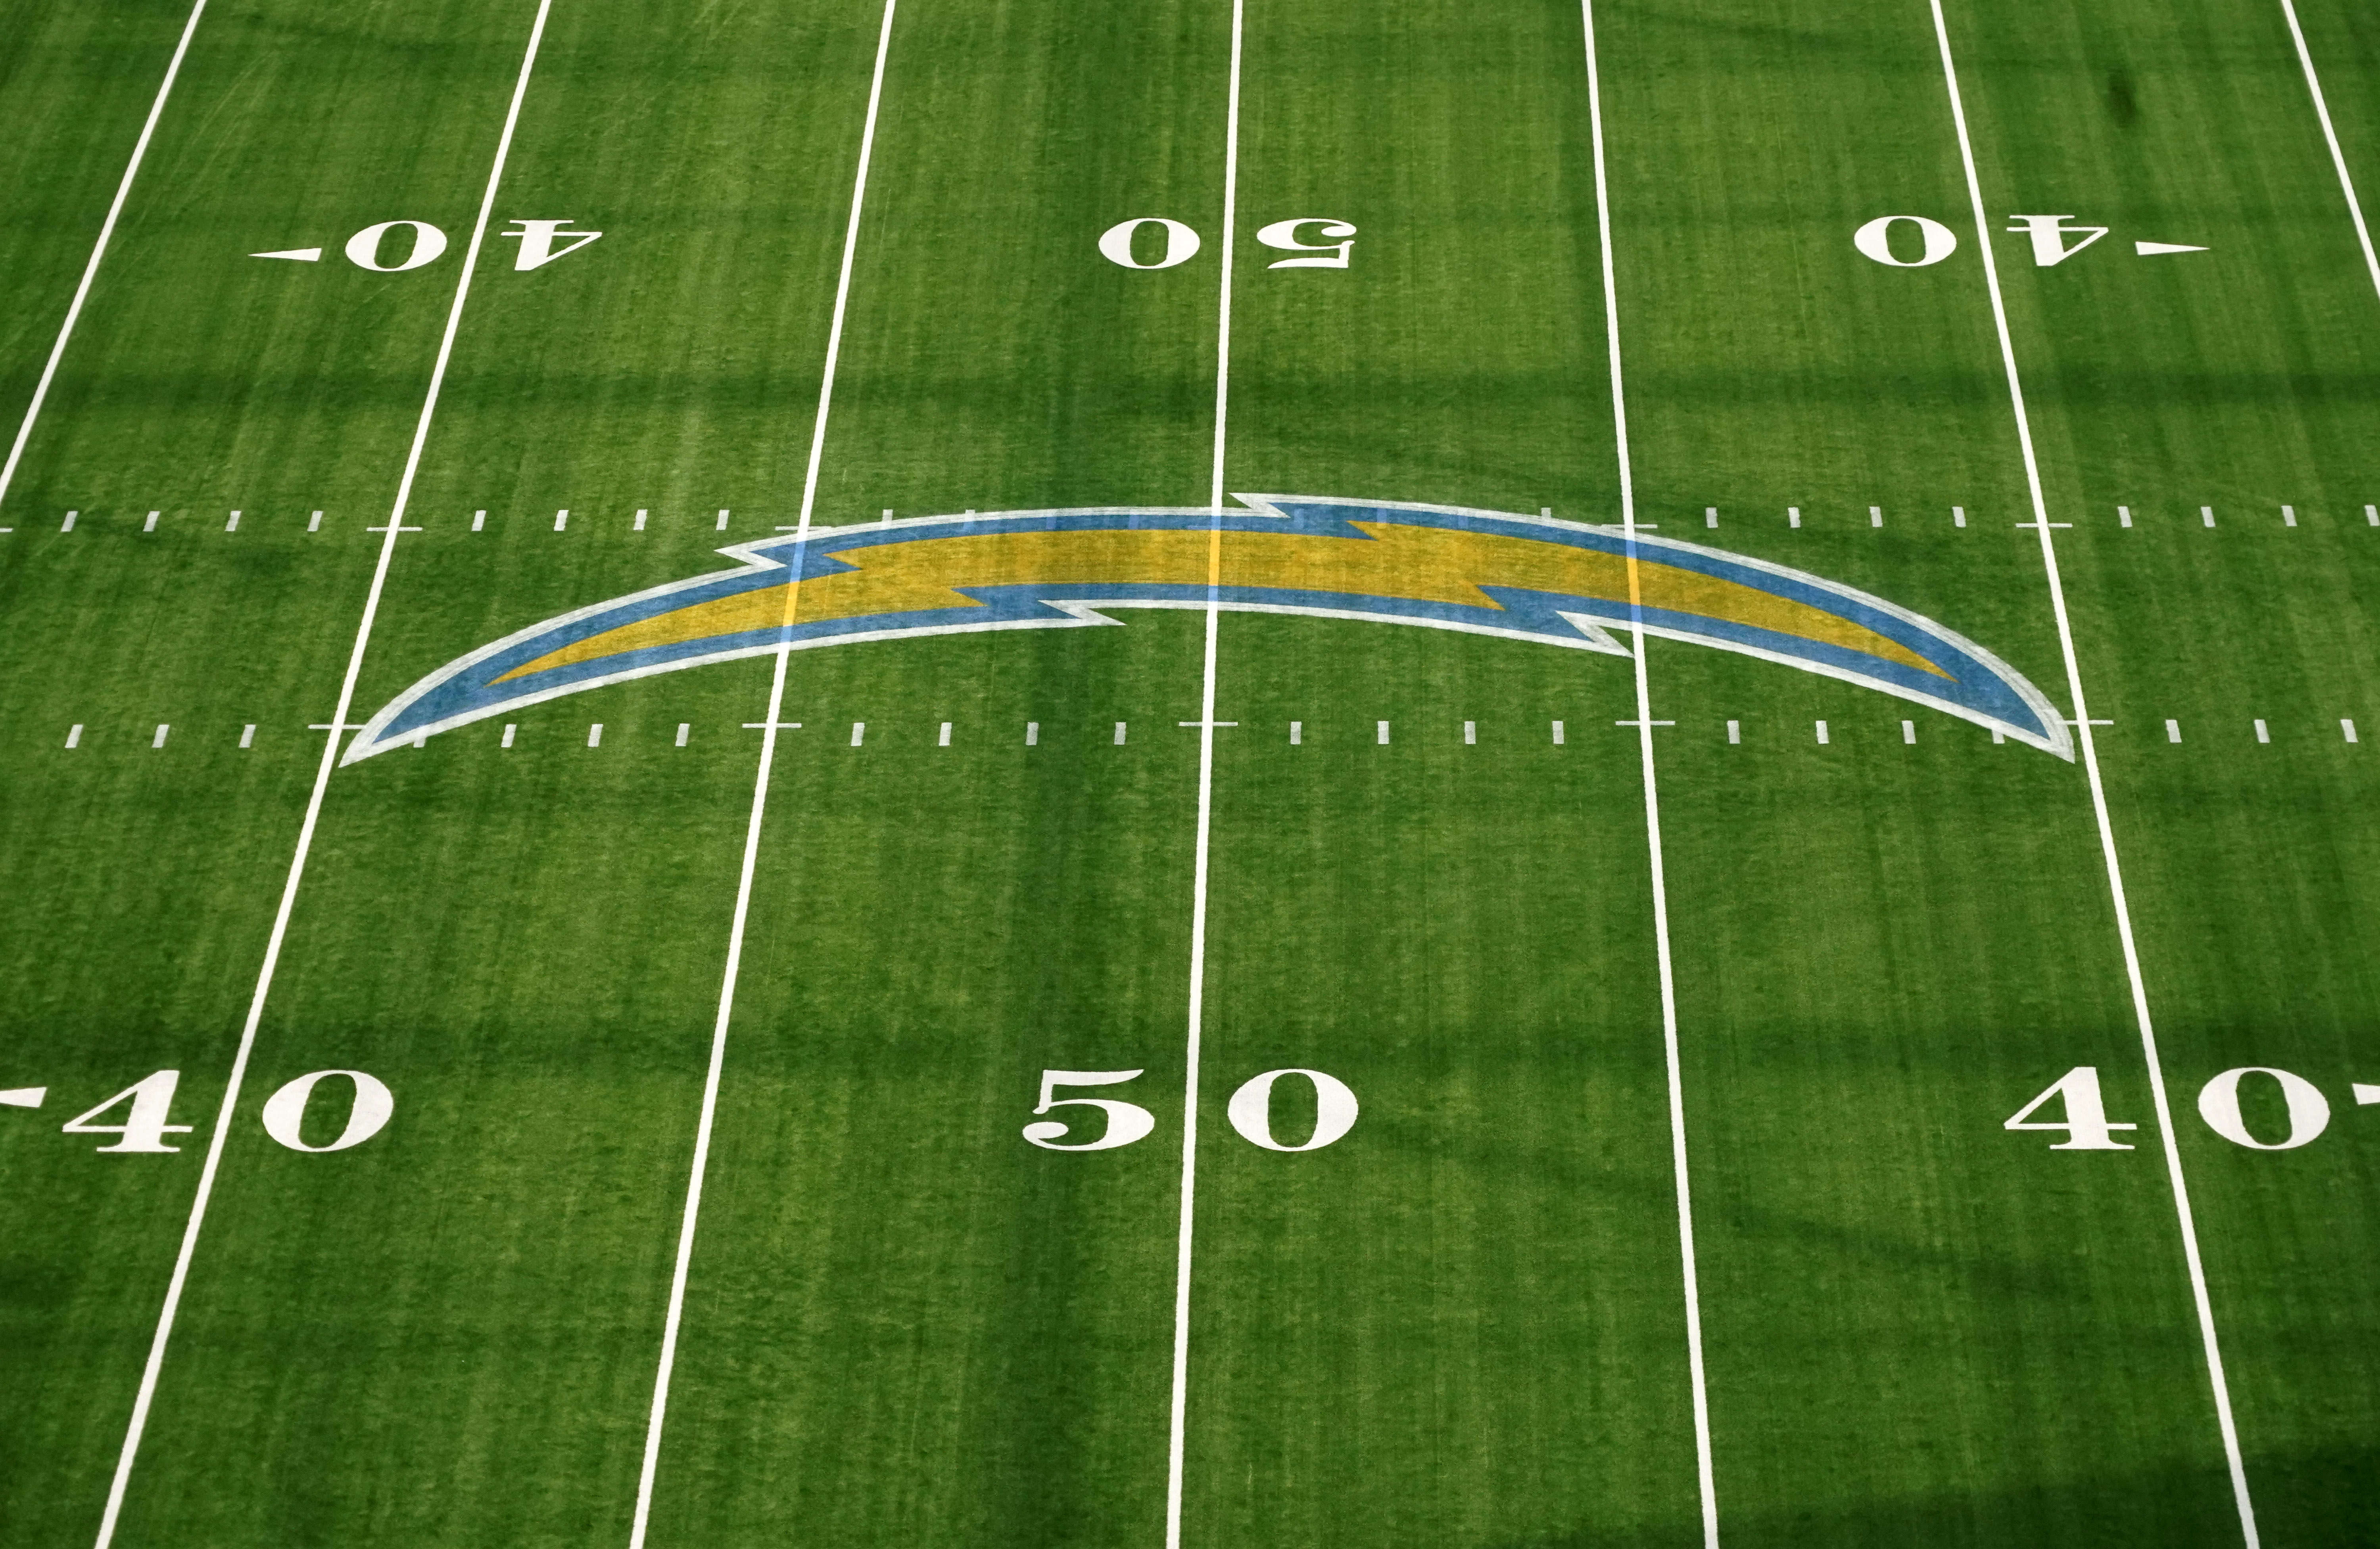 Los Angeles Chargers have player test positive for COVID-19